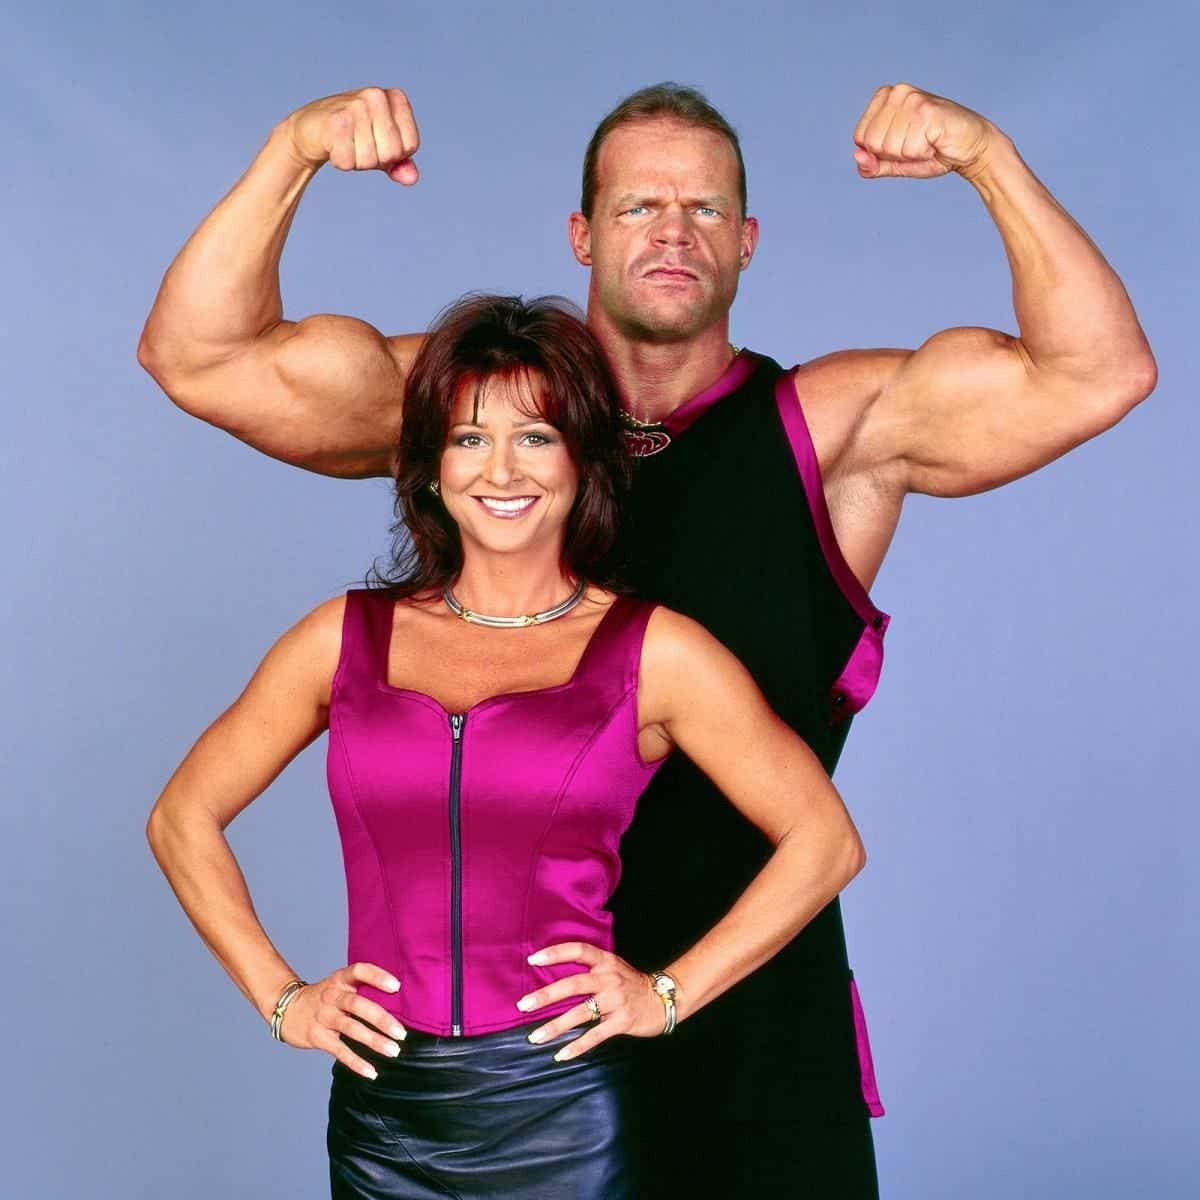 Miss Elizabeth and Lex Luger